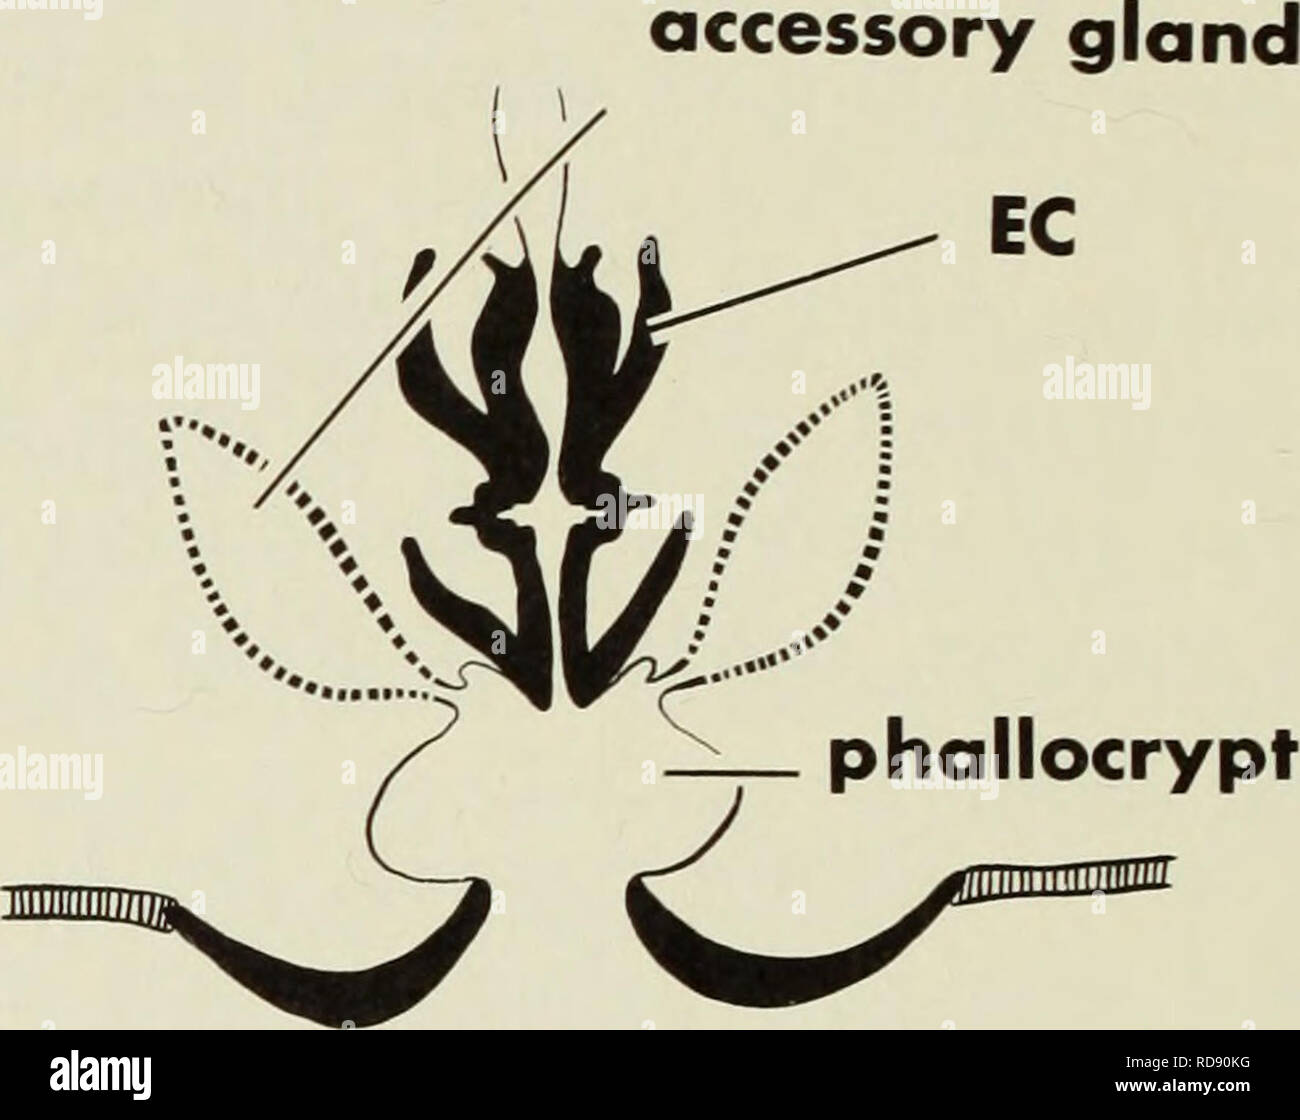 . The ejaculatory complex in water mites (Acari:parasitengona) : morphology and potential value for systematics. Arachnida; Arachnida; Generative organs, Male; Hydrodroma; Water mites. excretory pore coxa genital plate gnathosoma. midgut gnathosoma lb seminal vesicle ductus ejaculatorius gland. Please note that these images are extracted from scanned page images that may have been digitally enhanced for readability - coloration and appearance of these illustrations may not perfectly resemble the original work.. Barr, David W; Royal Ontario Museum. [Toronto] : Royal Ontario Museum - Stock Image